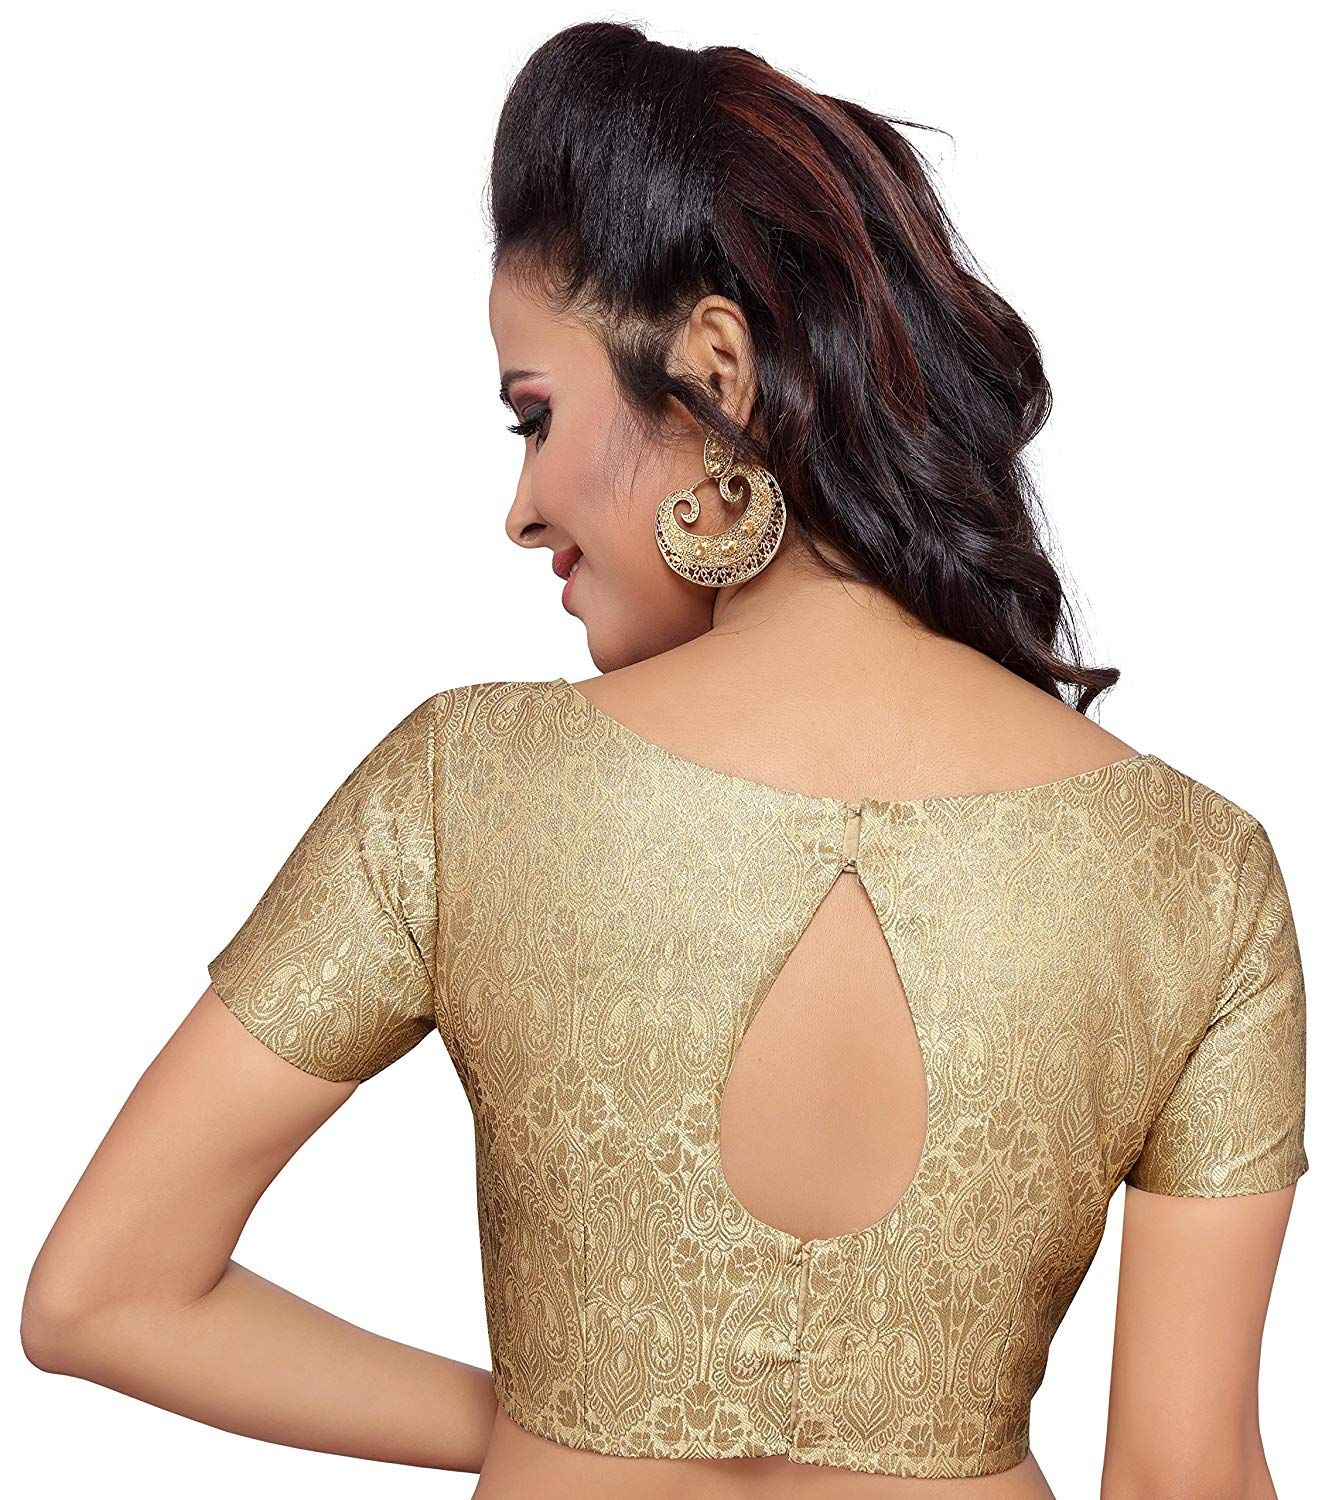 2d6b668f9b8fc3 STUDIO SHRINGAAR WOMEN'S GOLDEN BROCADE SAREE BLOUSE WITH STONEWORK  NECKLINE AND SHORT SLEEVES: Amazon.in: Clothing & Accessories